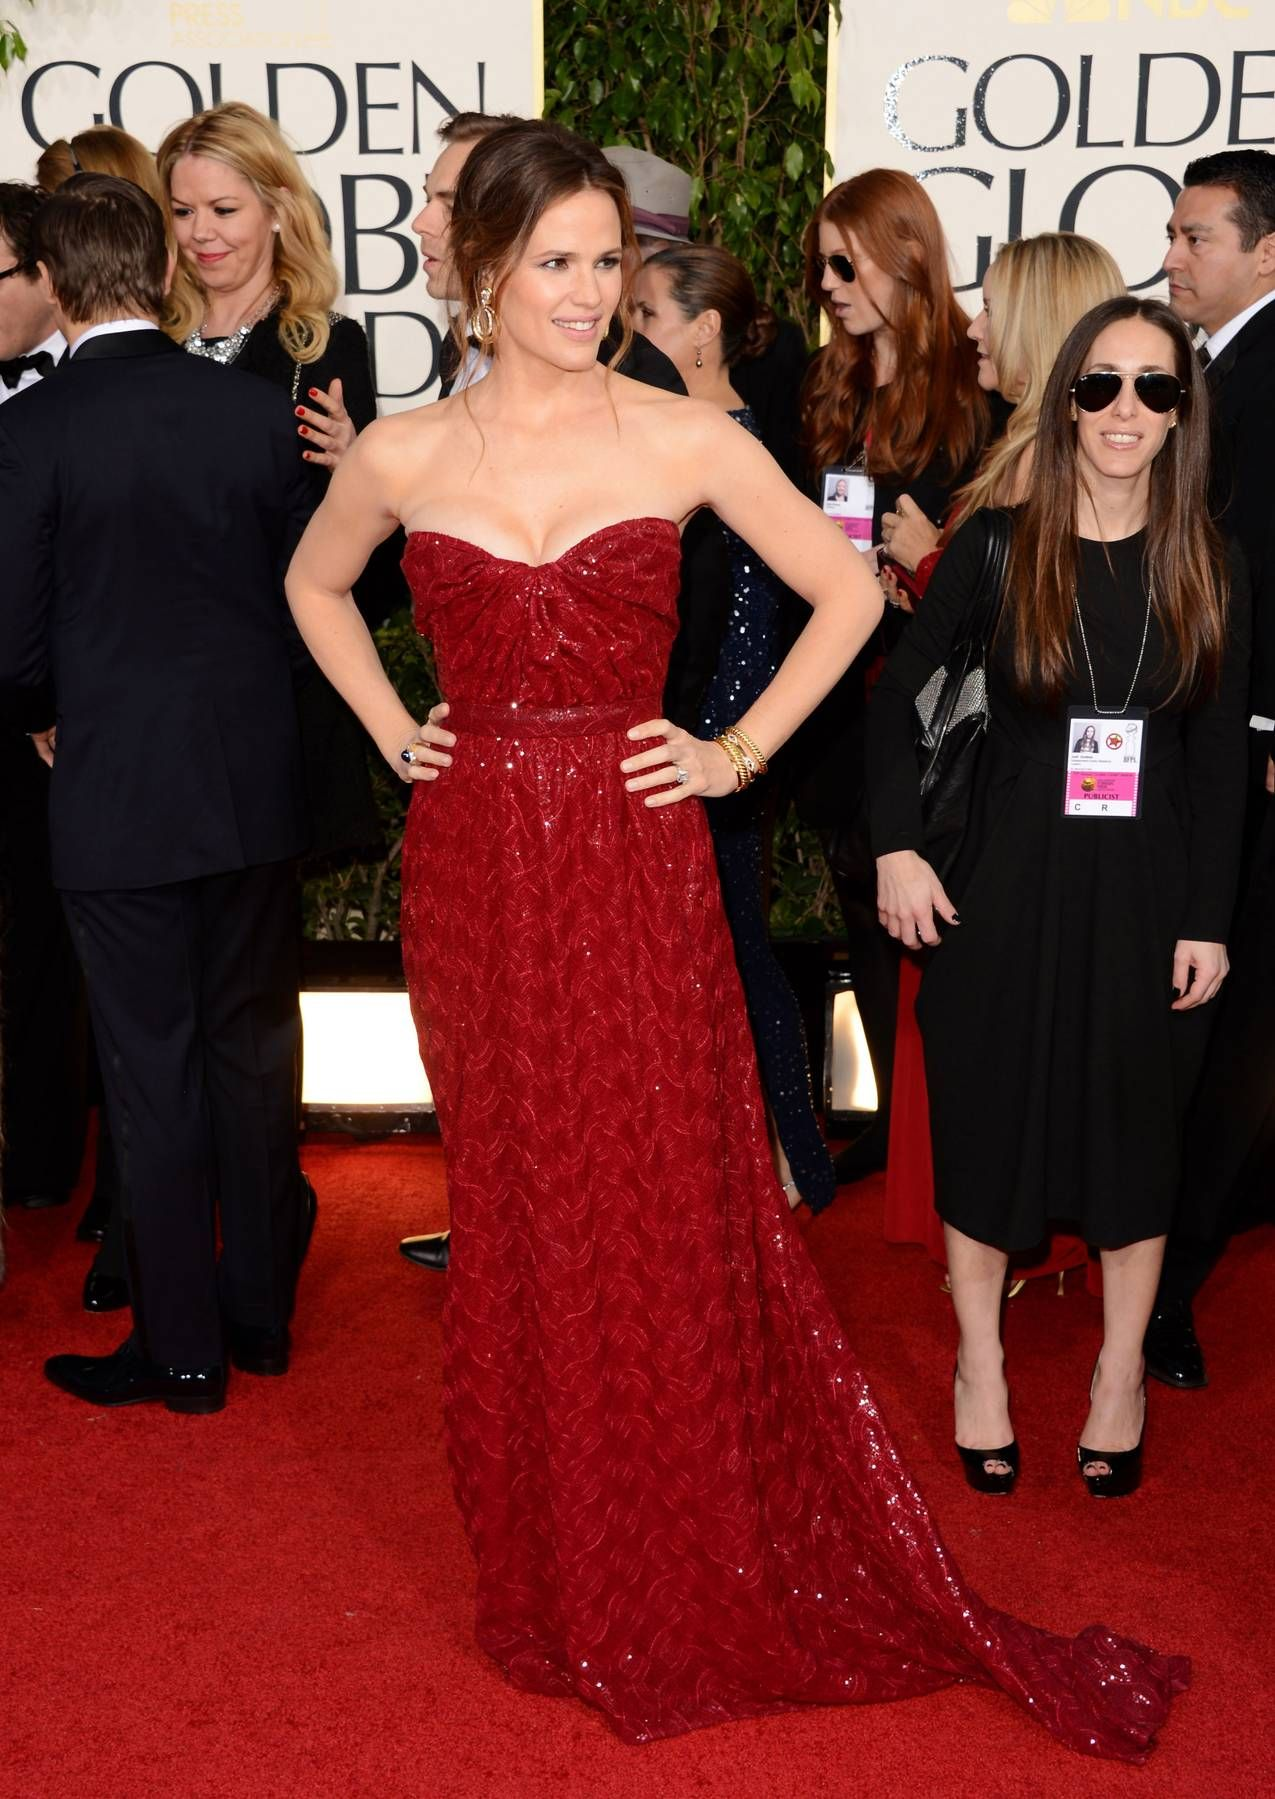 See All The Red Carpet Looks From The 2013 Golden Globes Golden Globes Dresses Red Carpet Looks Celebrity Dresses